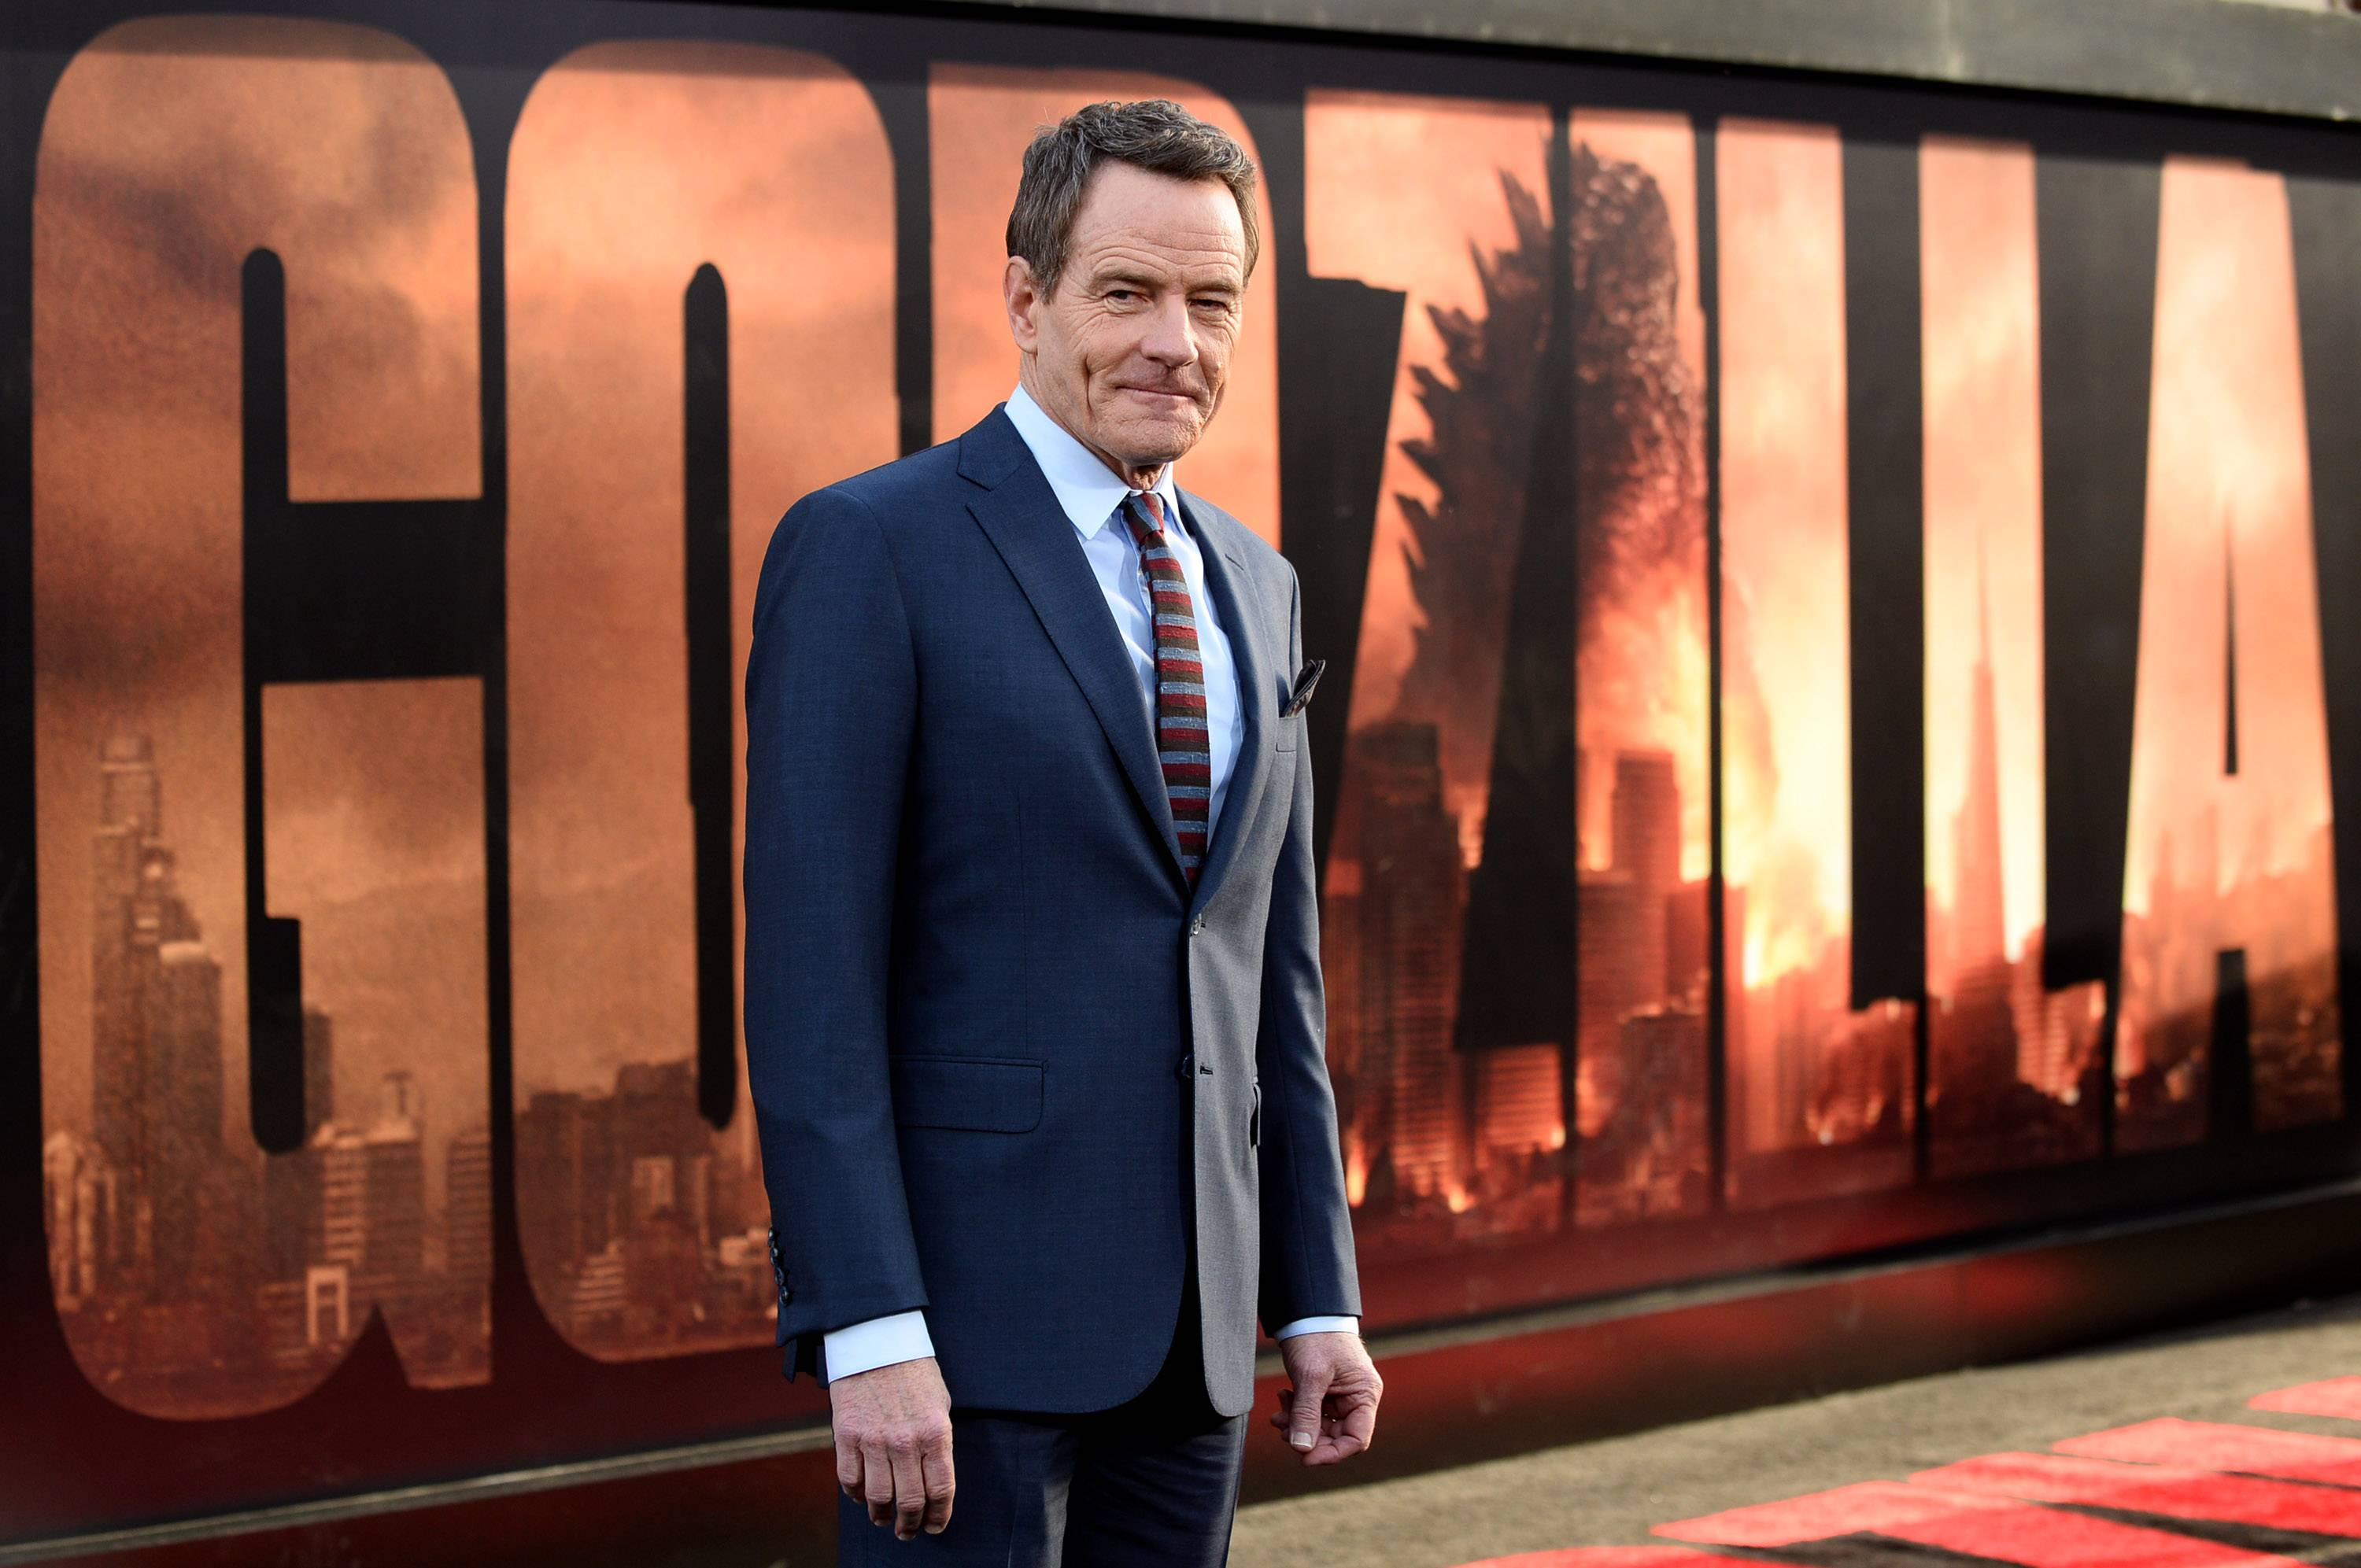 Bryan Cranston plays a nuclear scientist who becomes obsessed with the cause of a 1999 destruction of a nuclear power plant.